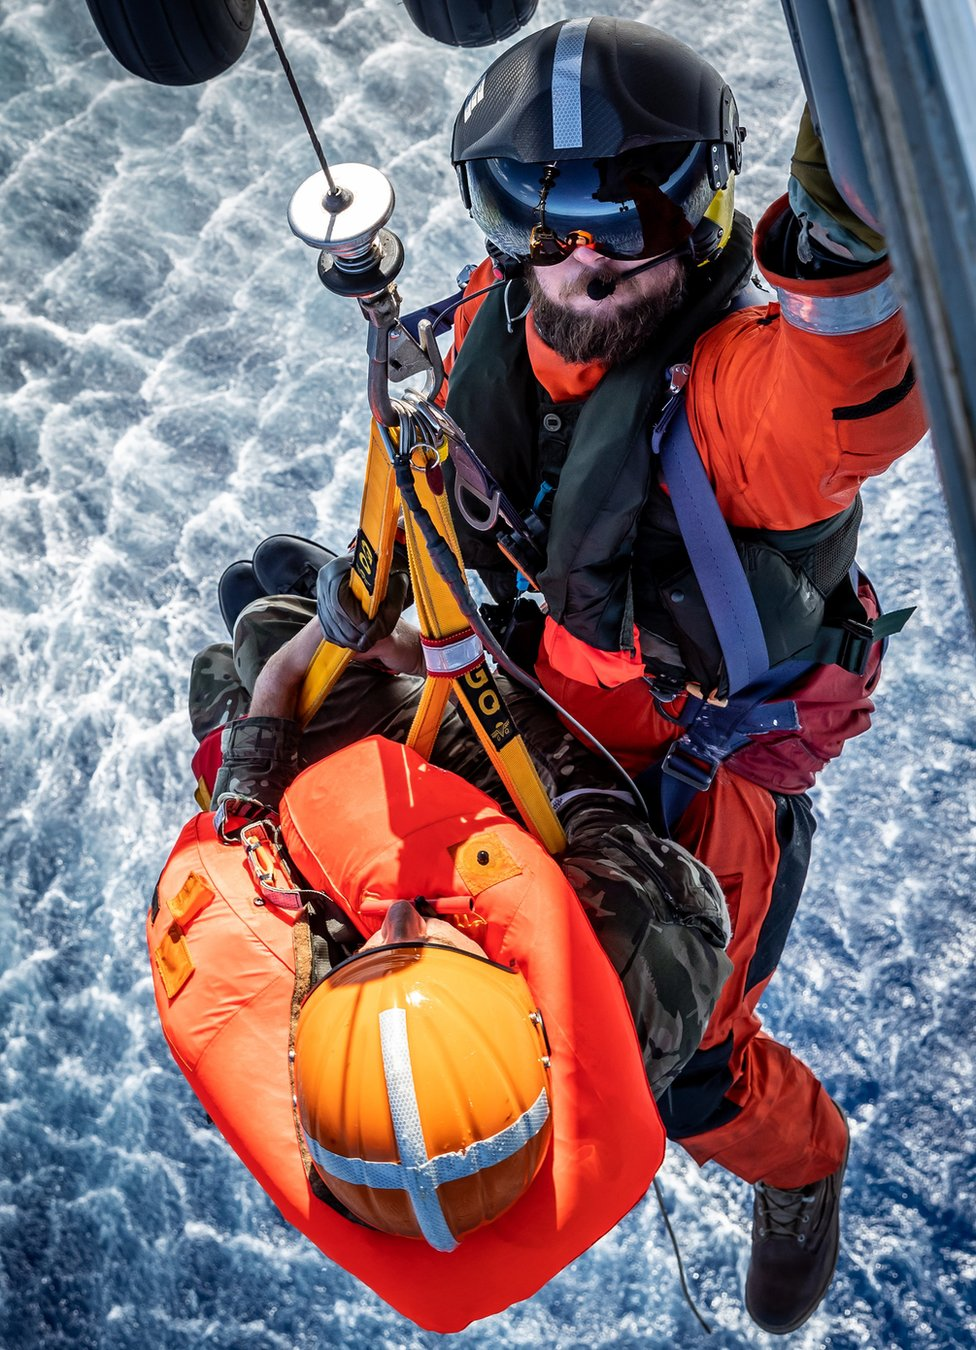 A pilot is winched onto a helicopter from the sea